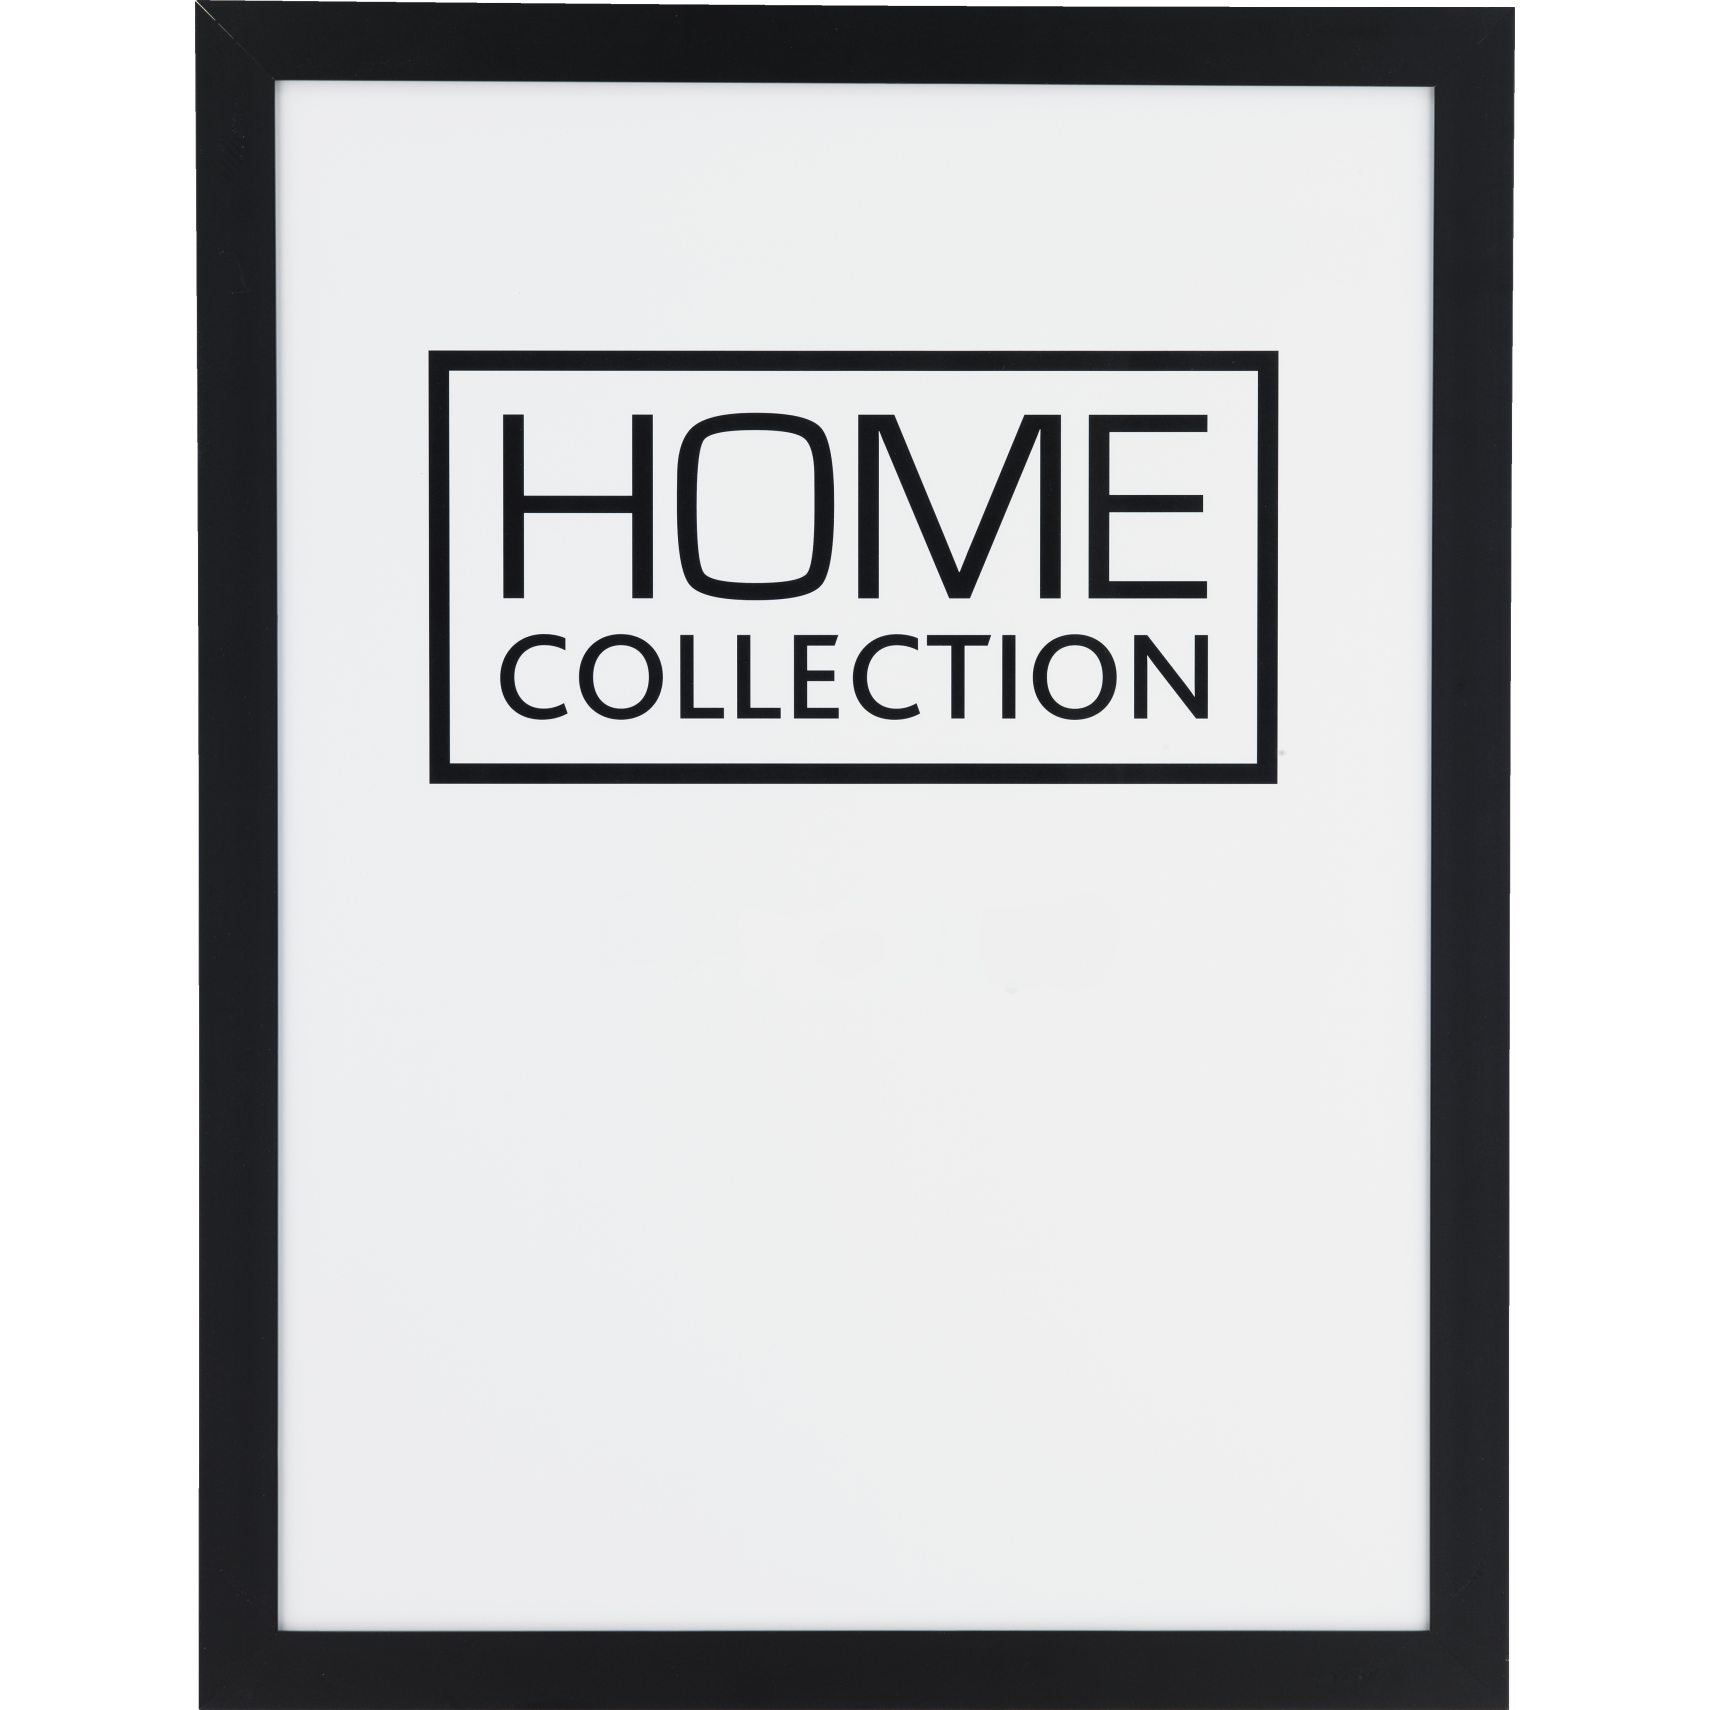 Homecollection Ramme 70 x 100 cm - Sort træramme